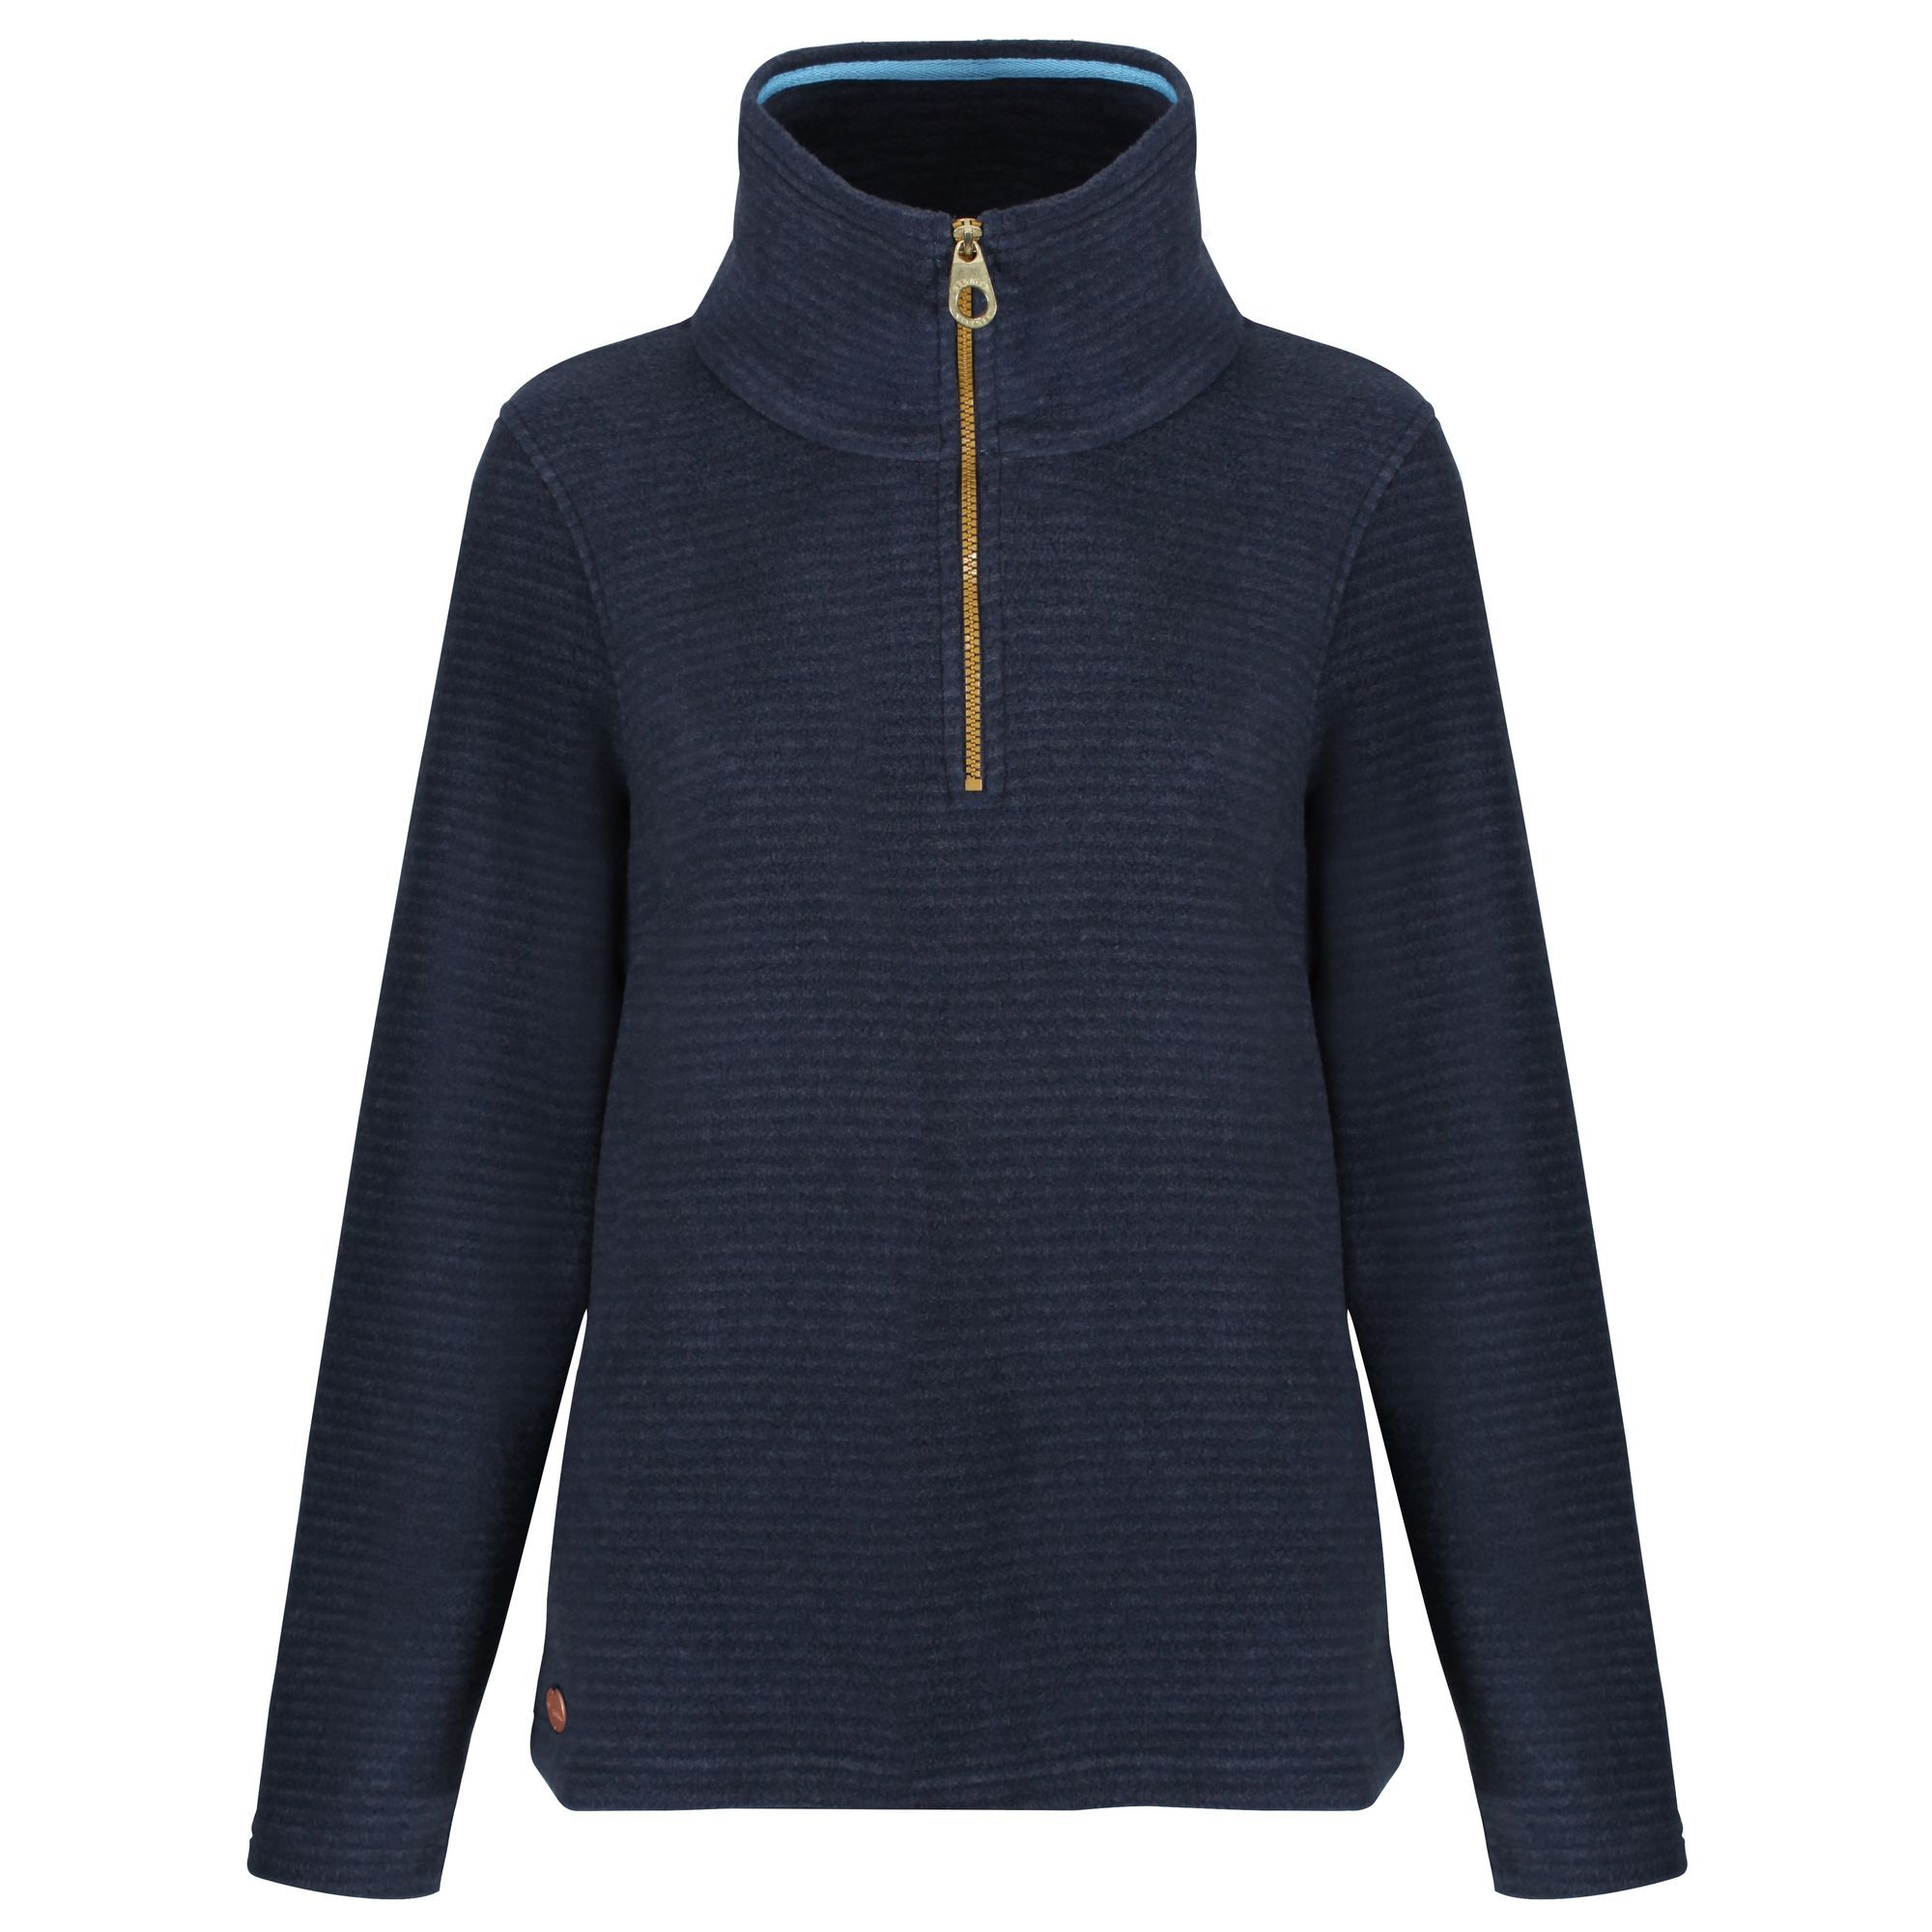 Regatta Solenne Sweater, Blue